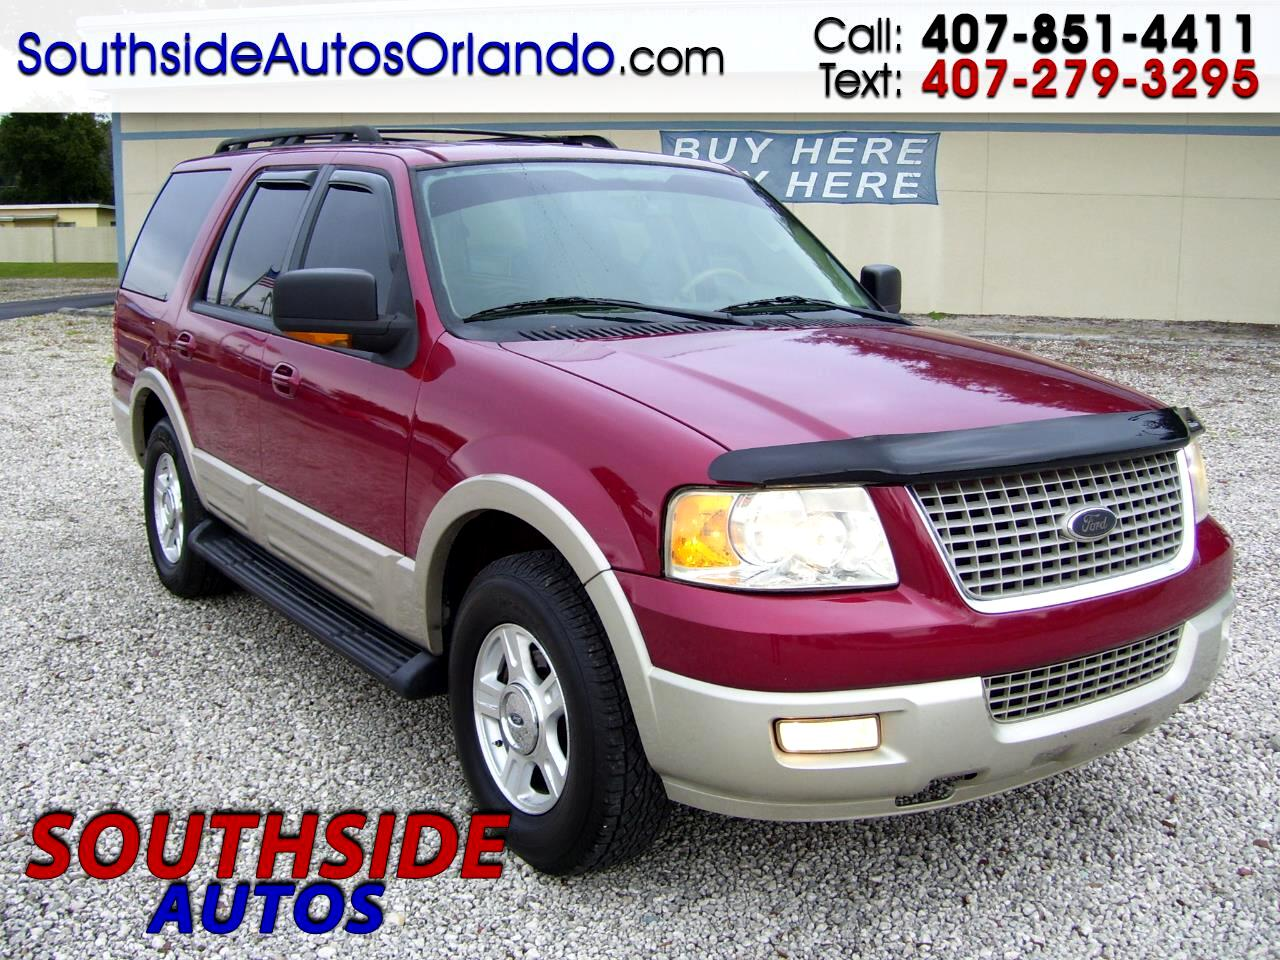 2005 Ford Expedition Eddie Bauer >> Buy Here Pay Here 2005 Ford Expedition Eddie Bauer 2wd For